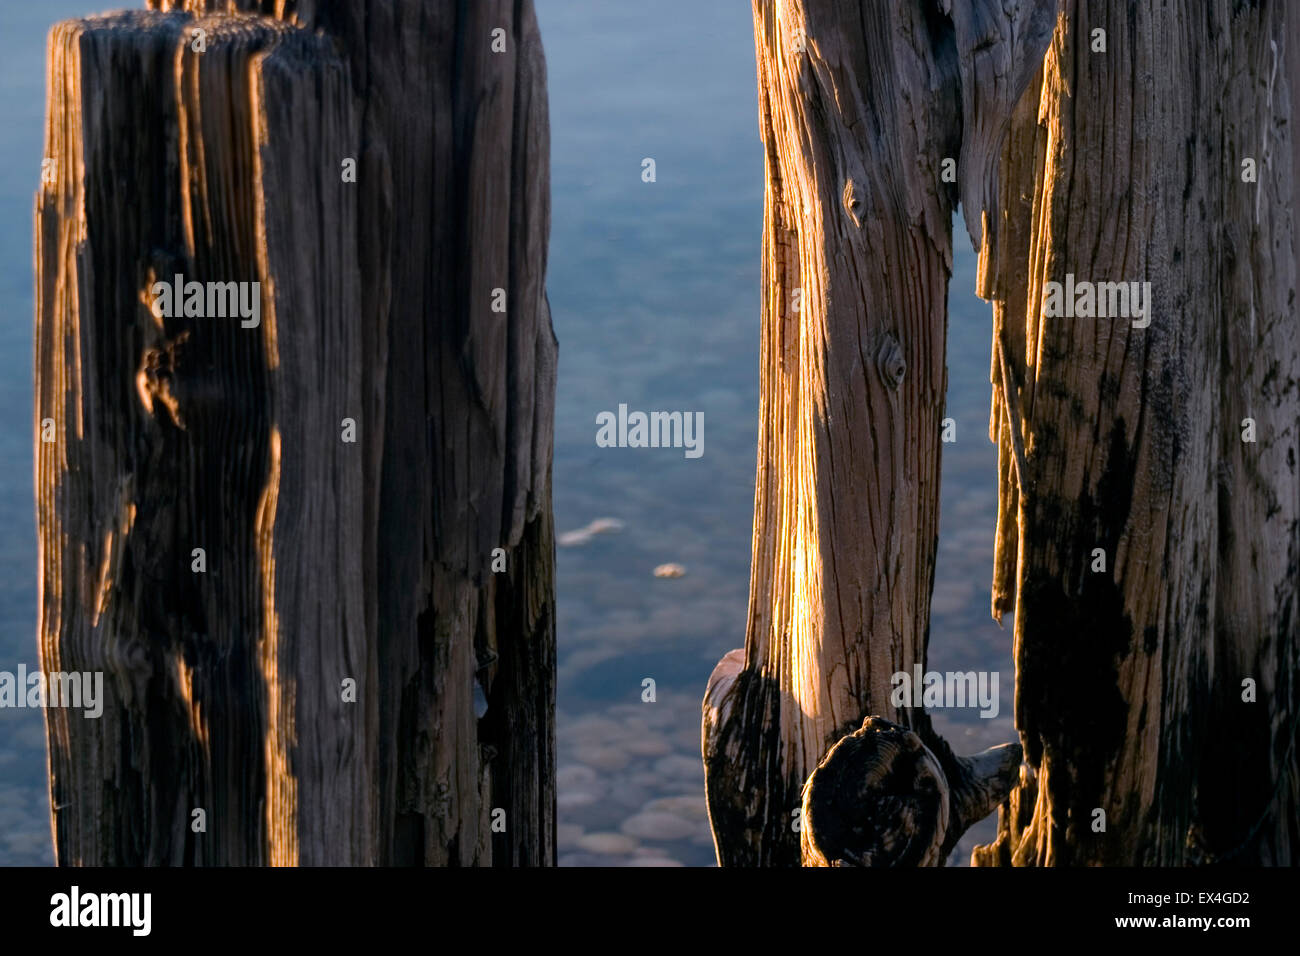 Old water-worn wooden pilings in calm dawn waters in Peconic Bay, near Sag Harbor, New York offer reflections of - Stock Image